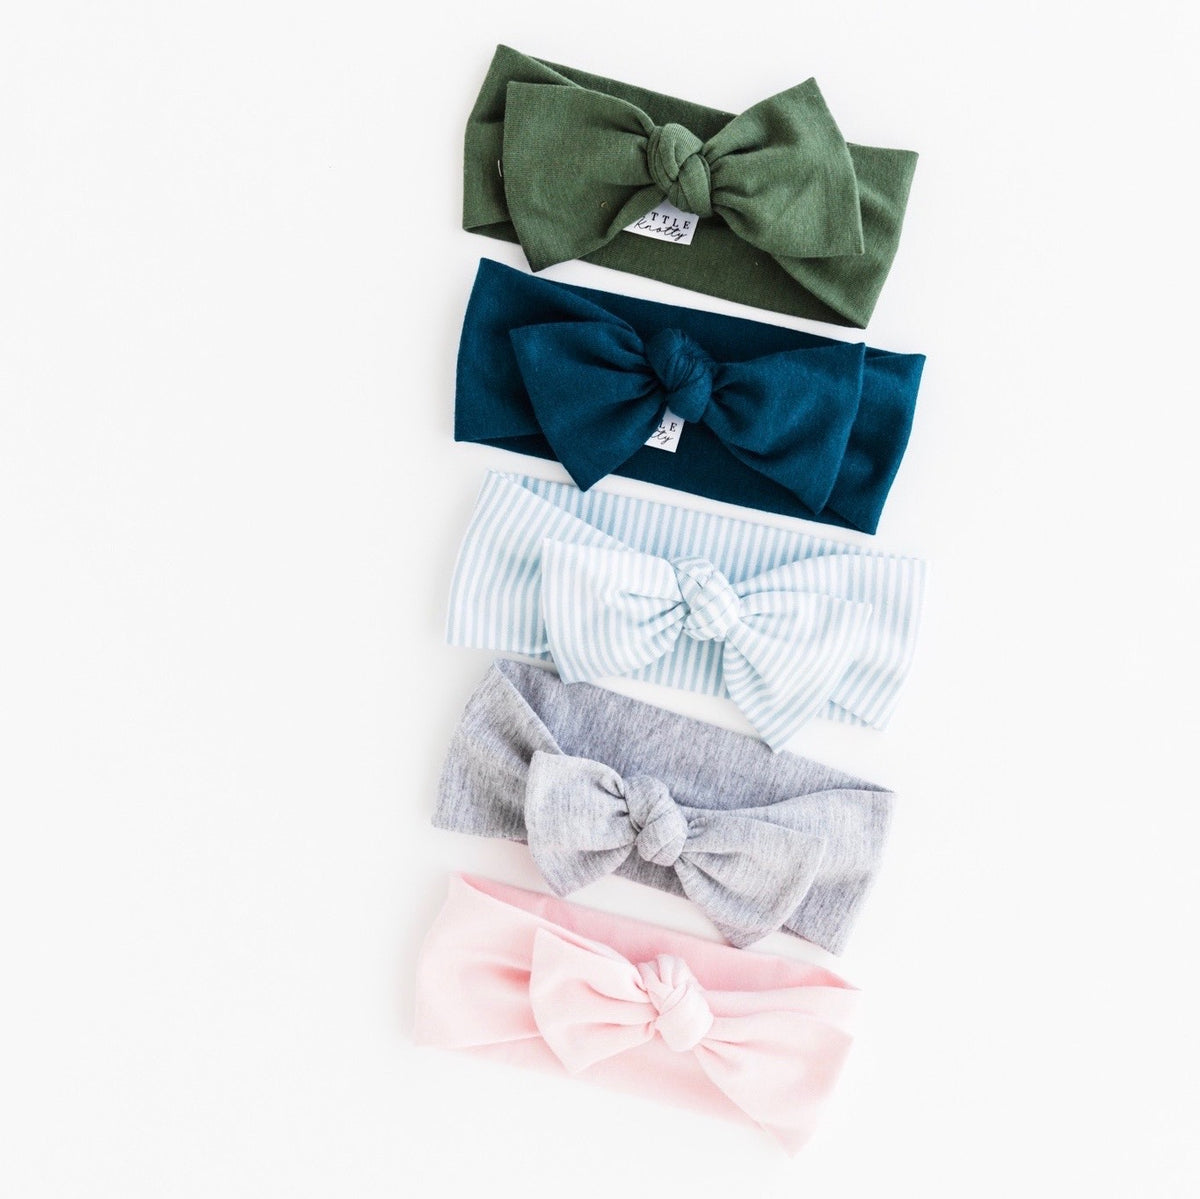 Our headbands are made from our super soft and stretchy bamboo fabric. They are comfortable enough for baby to wear all day and stretchy enough to last into the first year- at least! They are ethically made in can